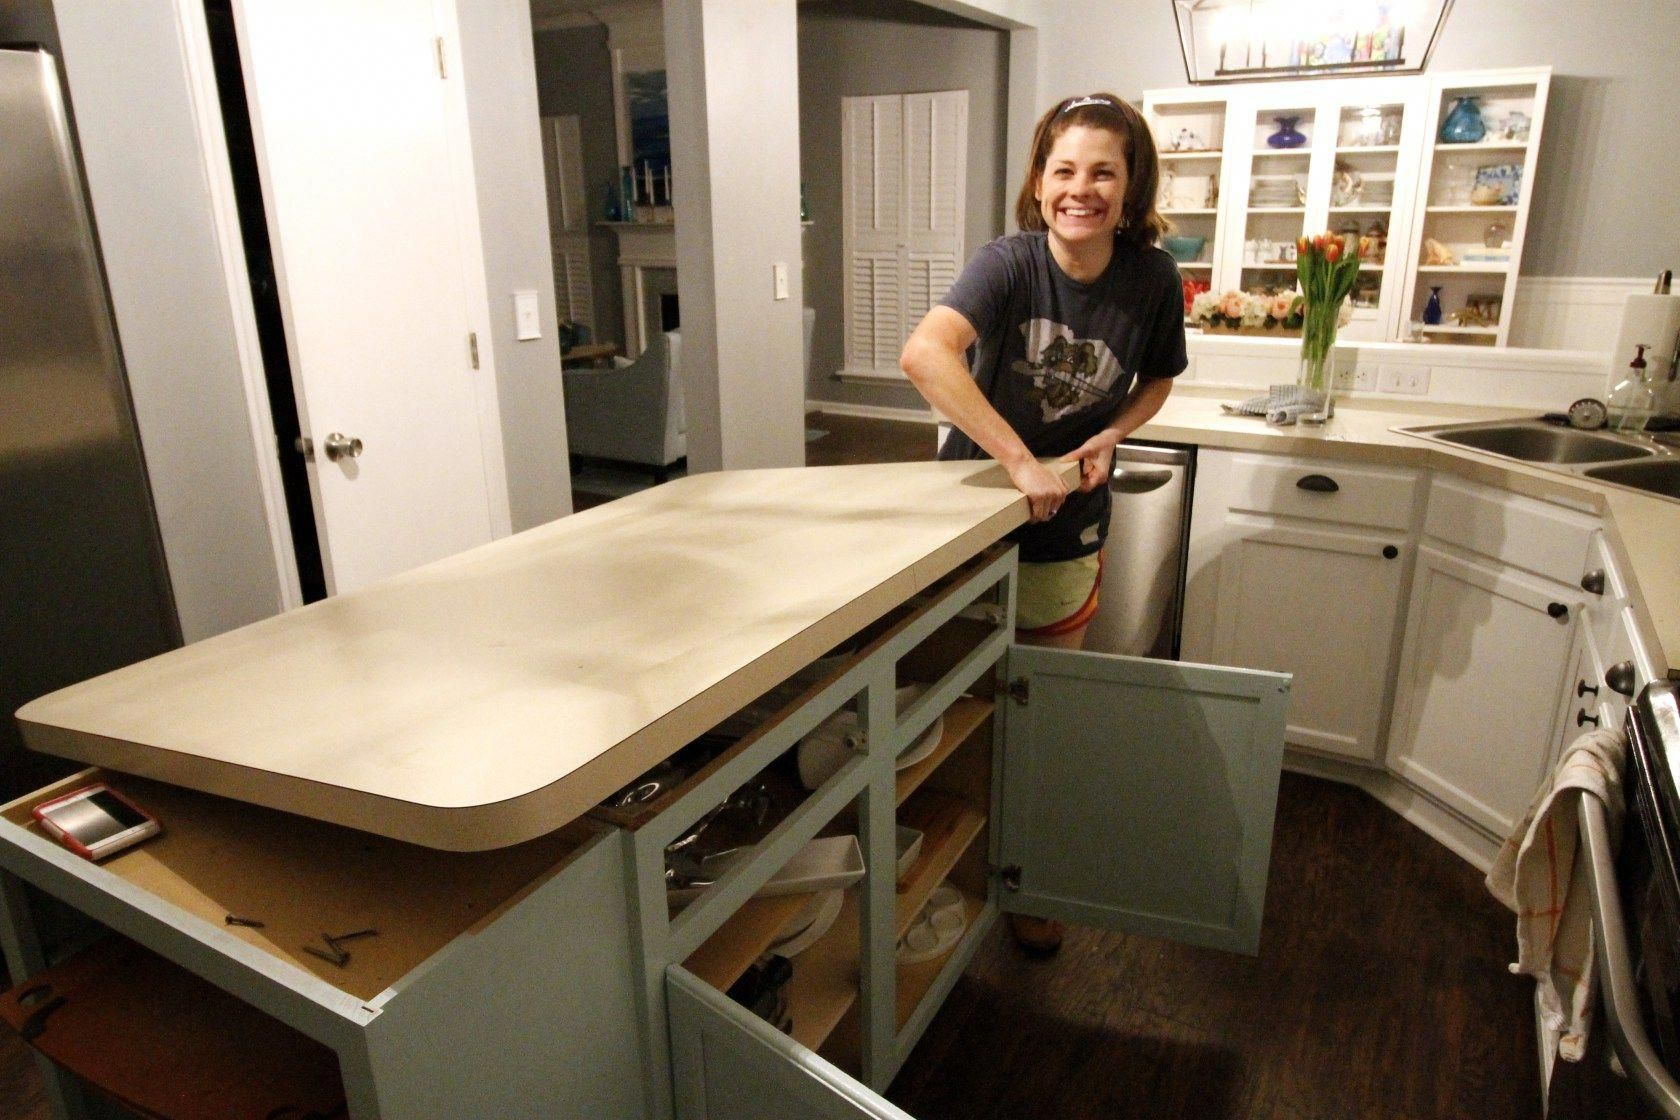 How To Remove Old Laminate Countertops Backsplash Without